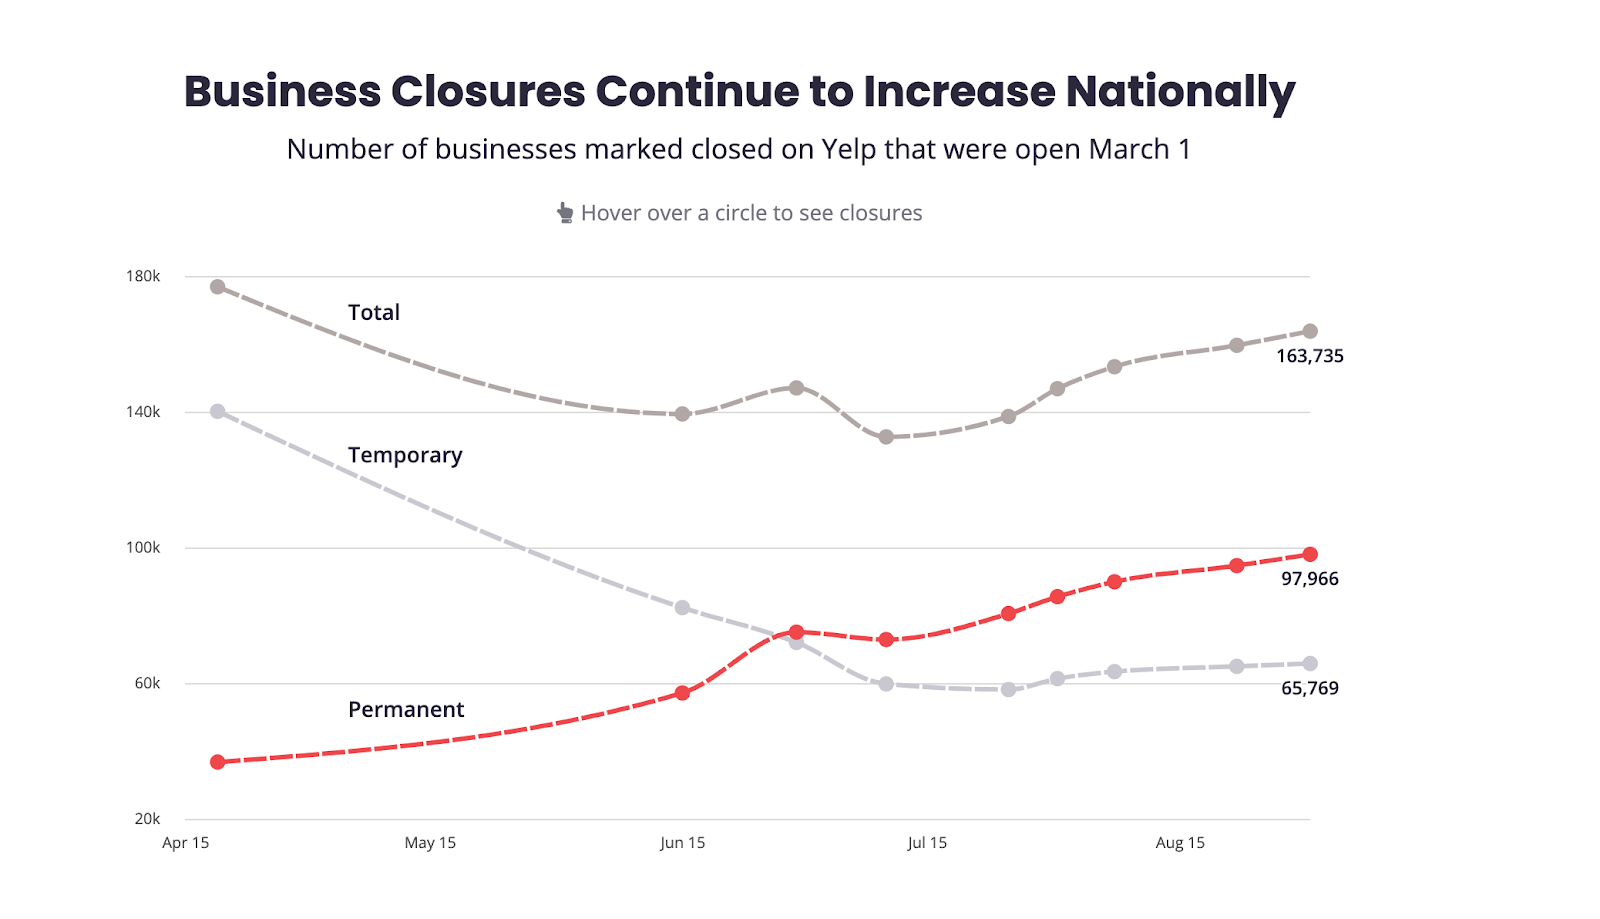 Yelp business closure stats